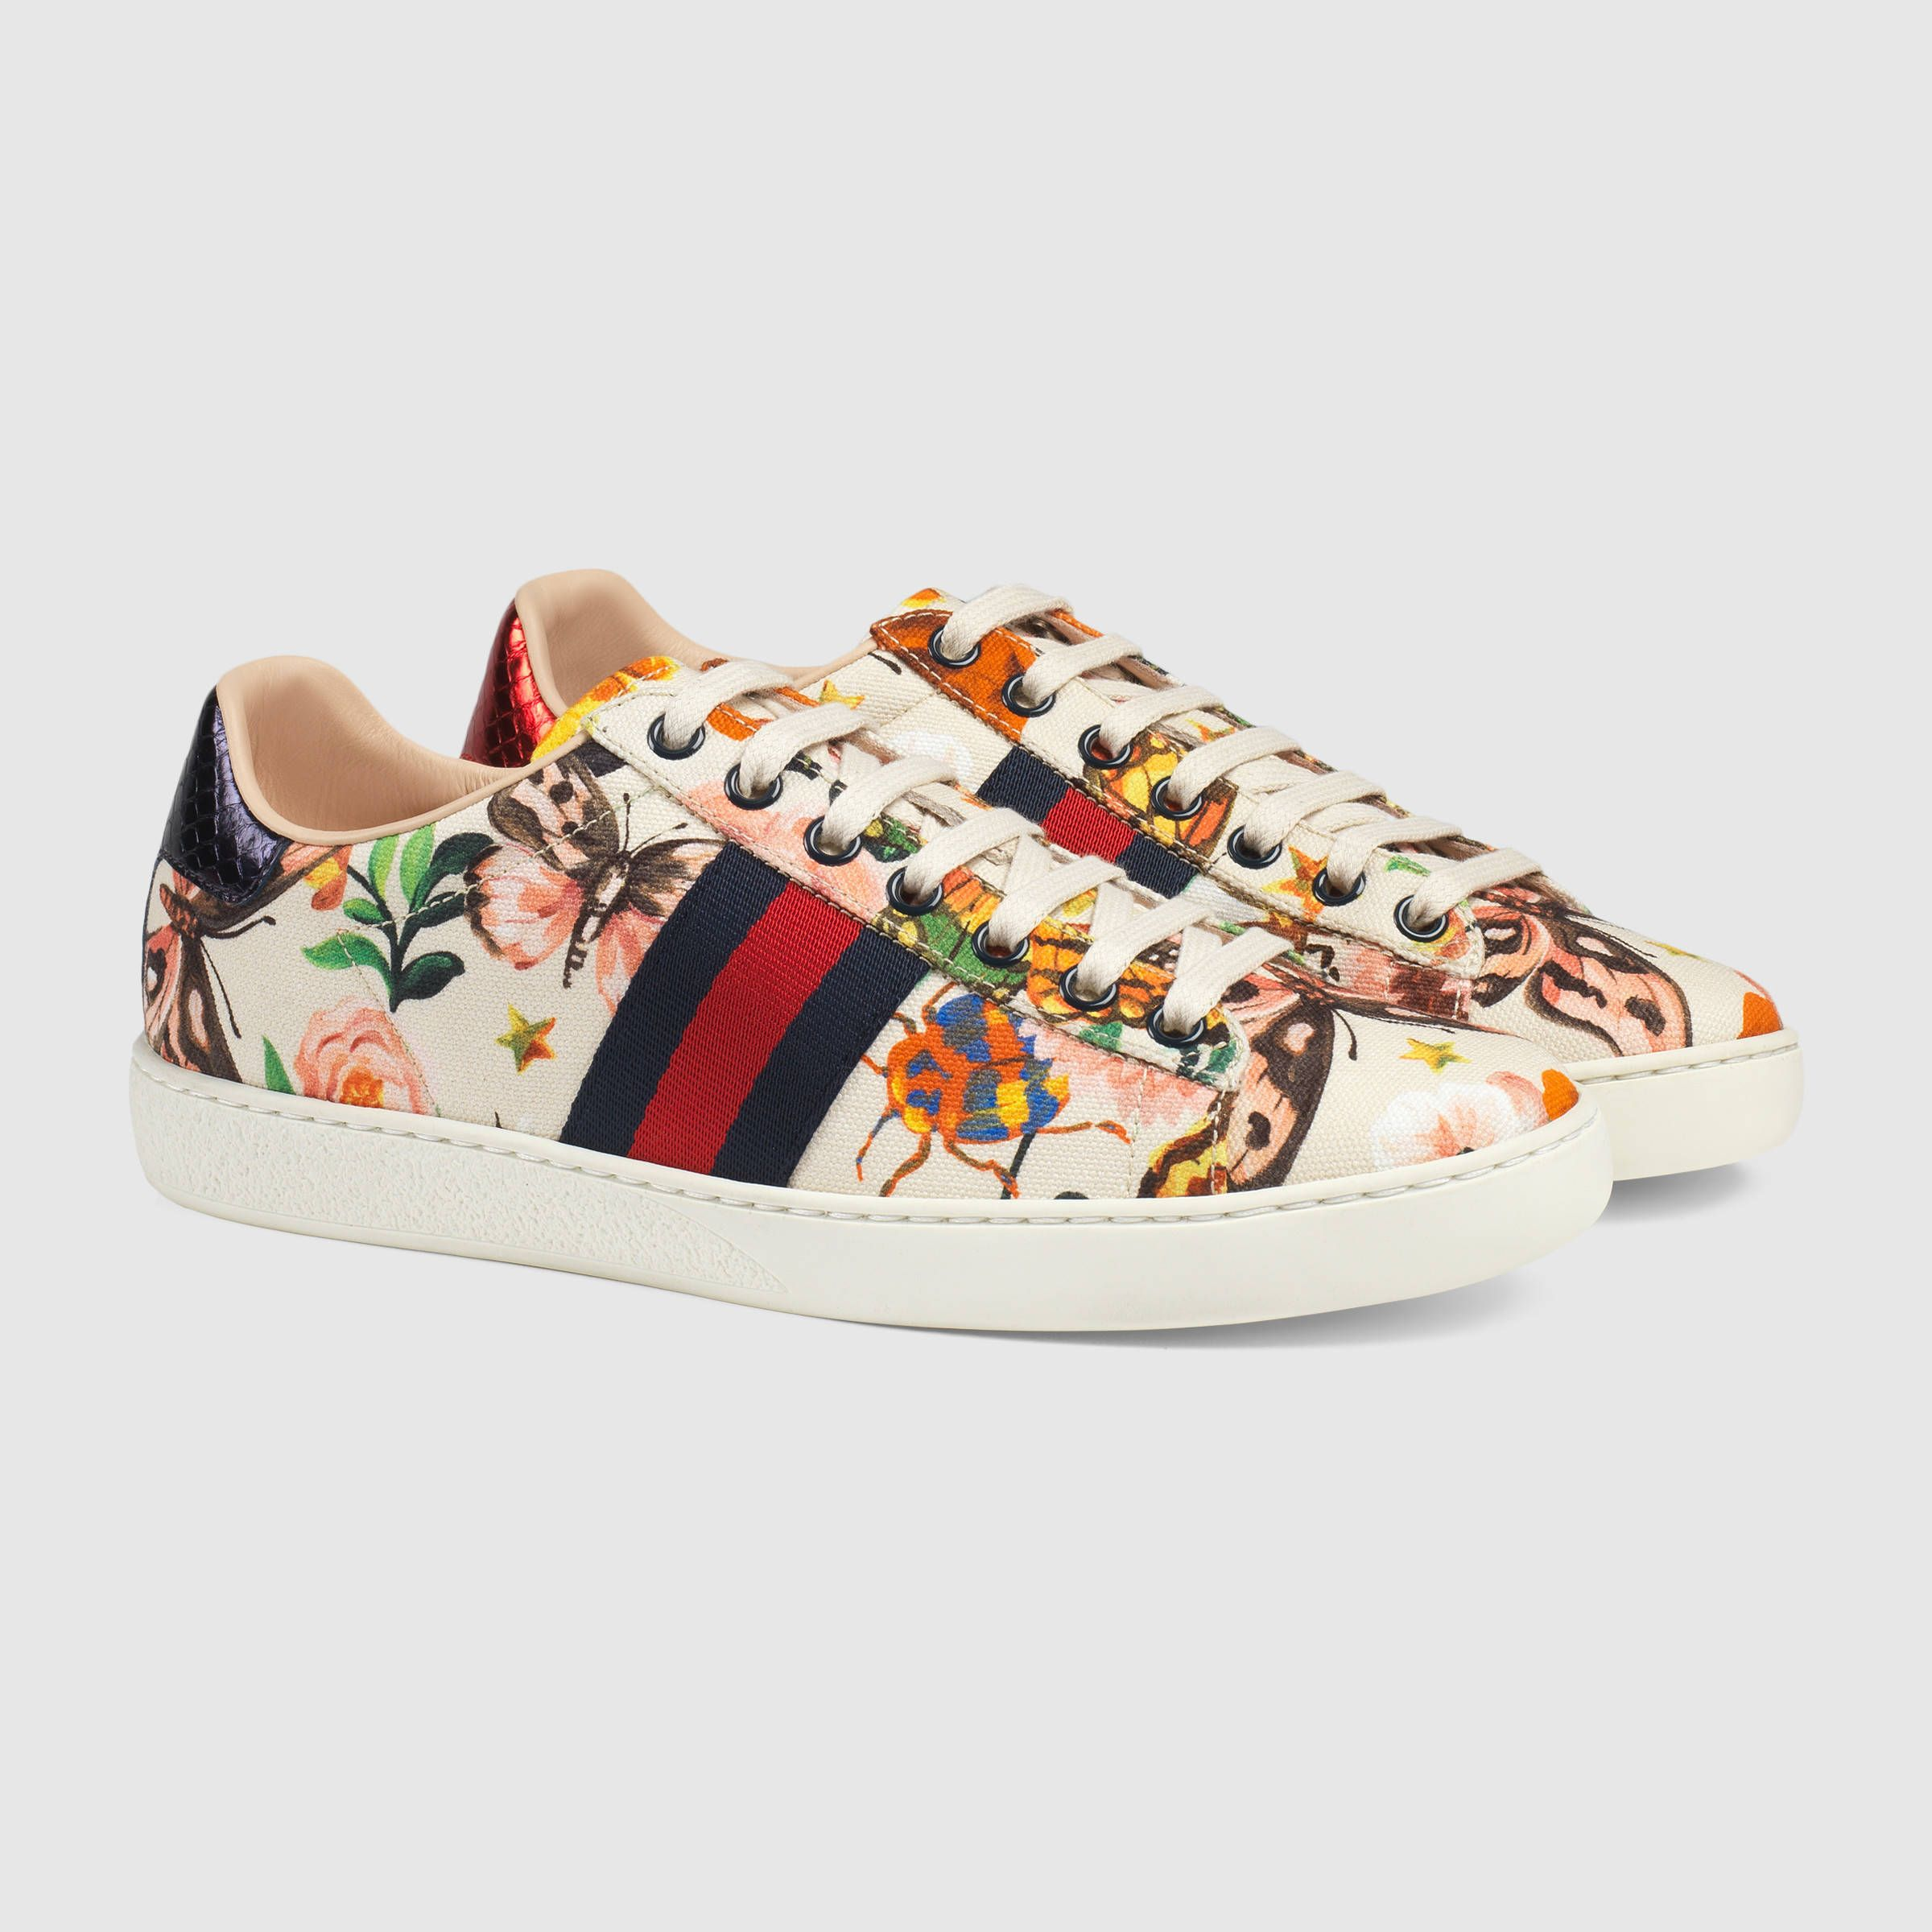 Gucci Garden exclusive Ace sneaker - Gucci Women s Sneakers 438217K3Q109263 8e7bd86c4e66